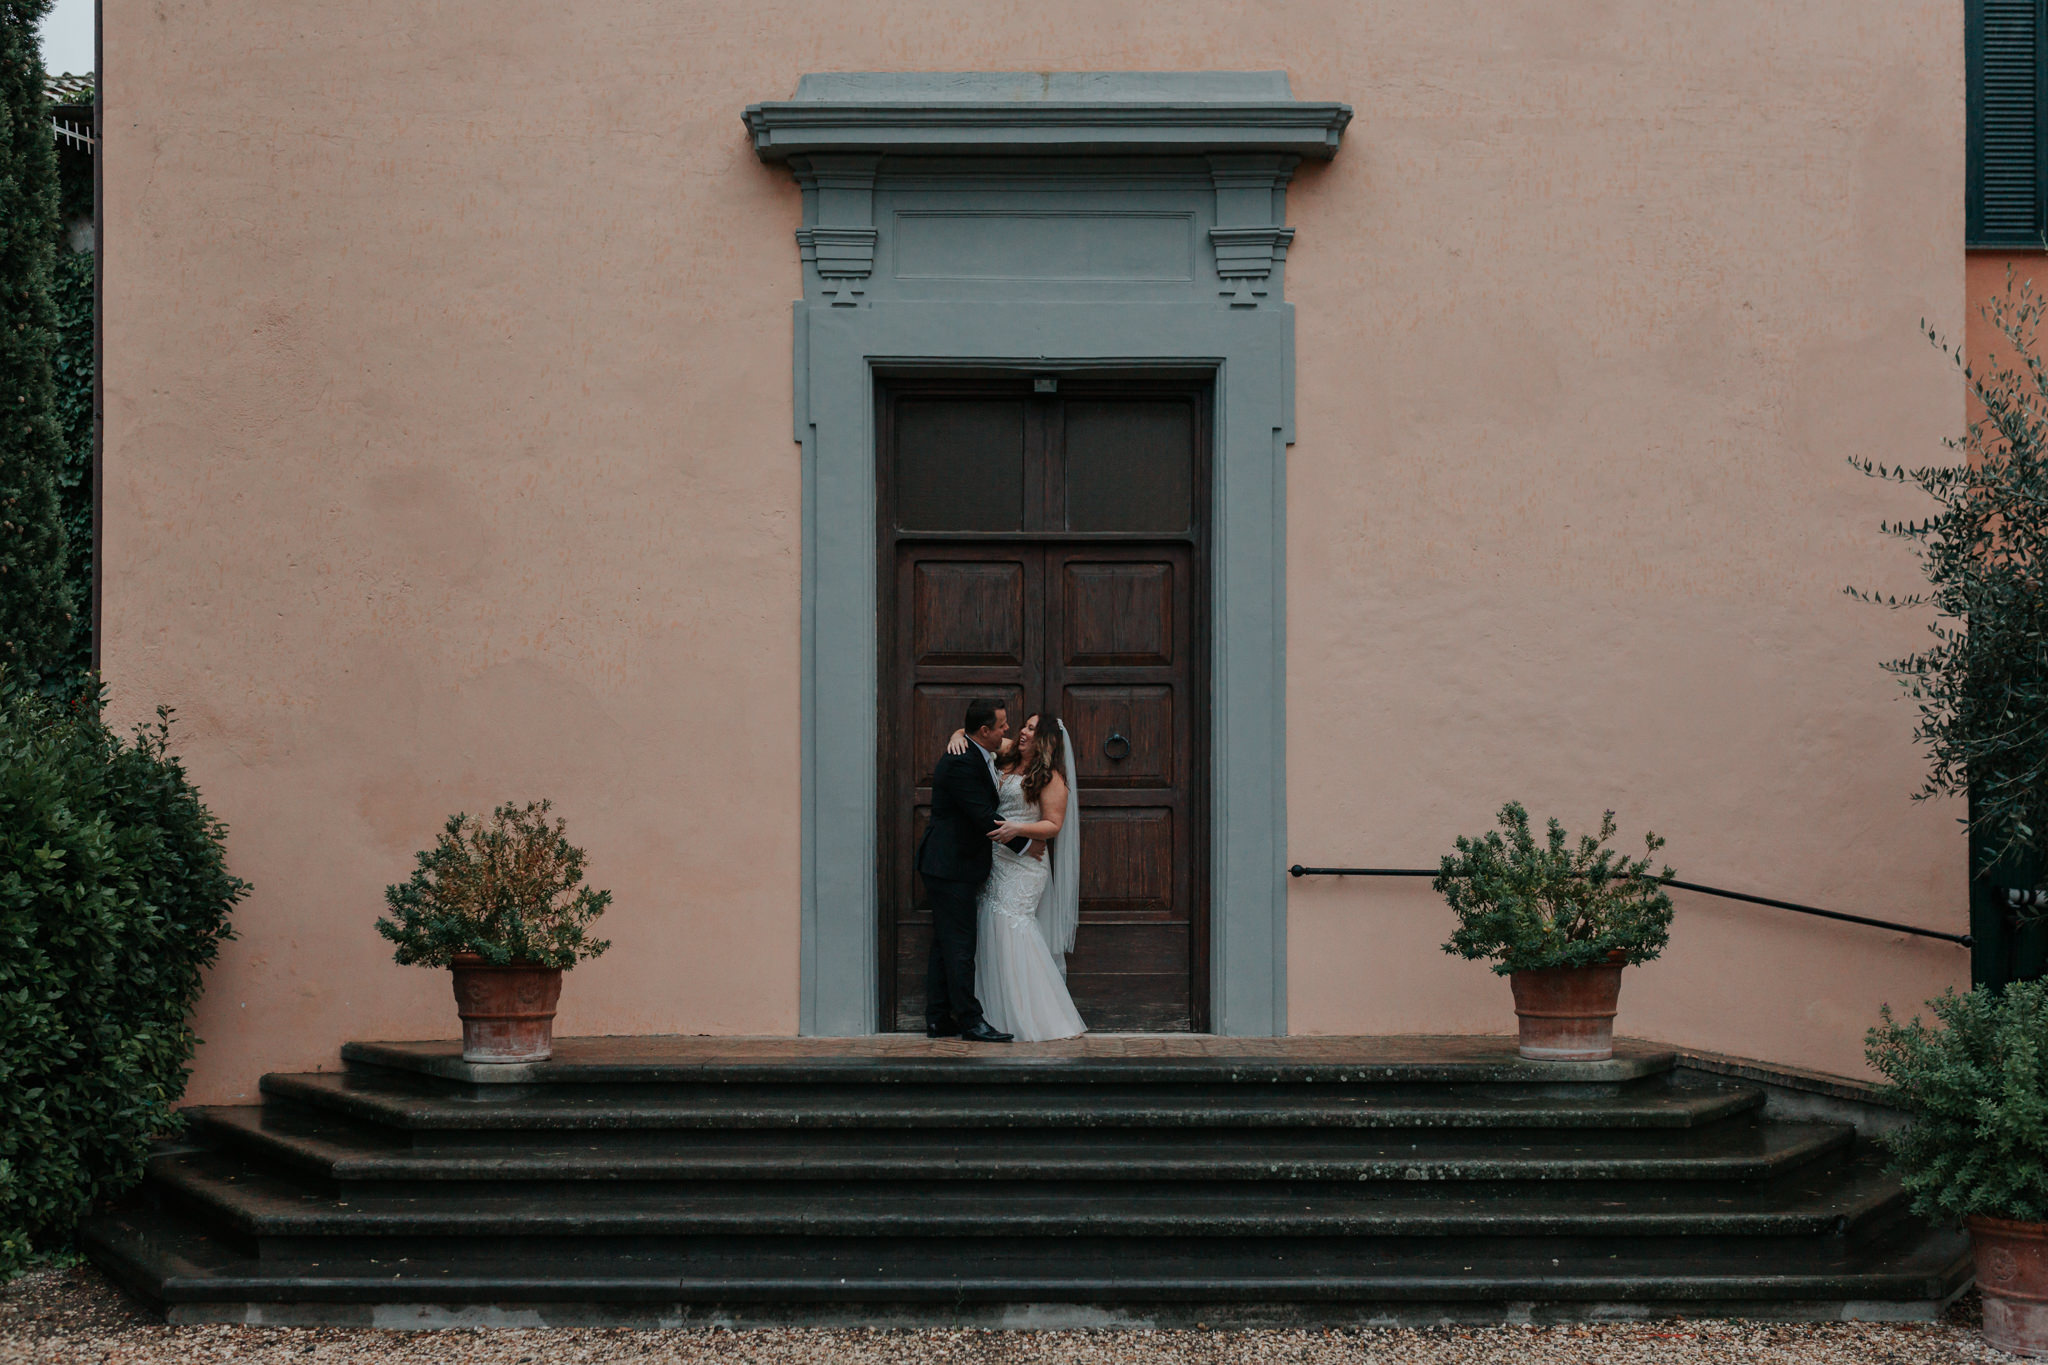 Elkie&Doug_Wedding_Italy_KristieCarrickPhotography_LOW-611.jpg